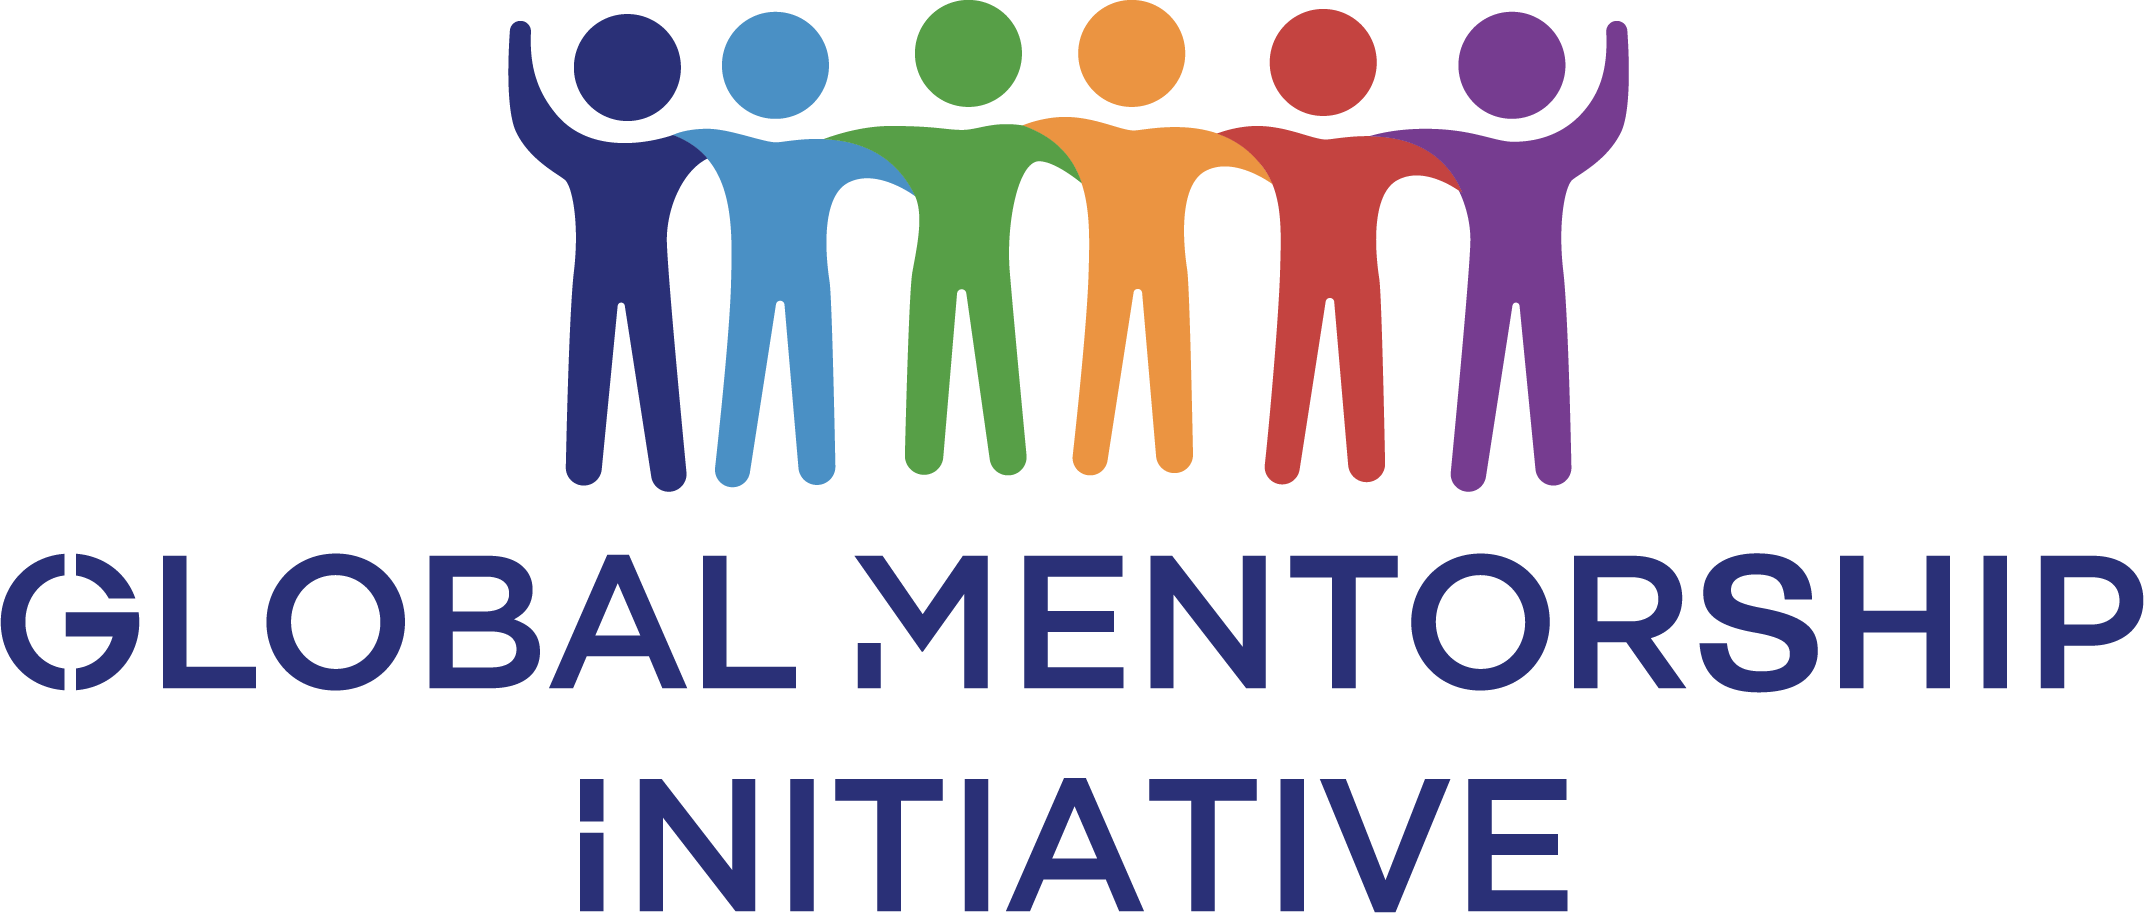 Global Mentorship Initiative